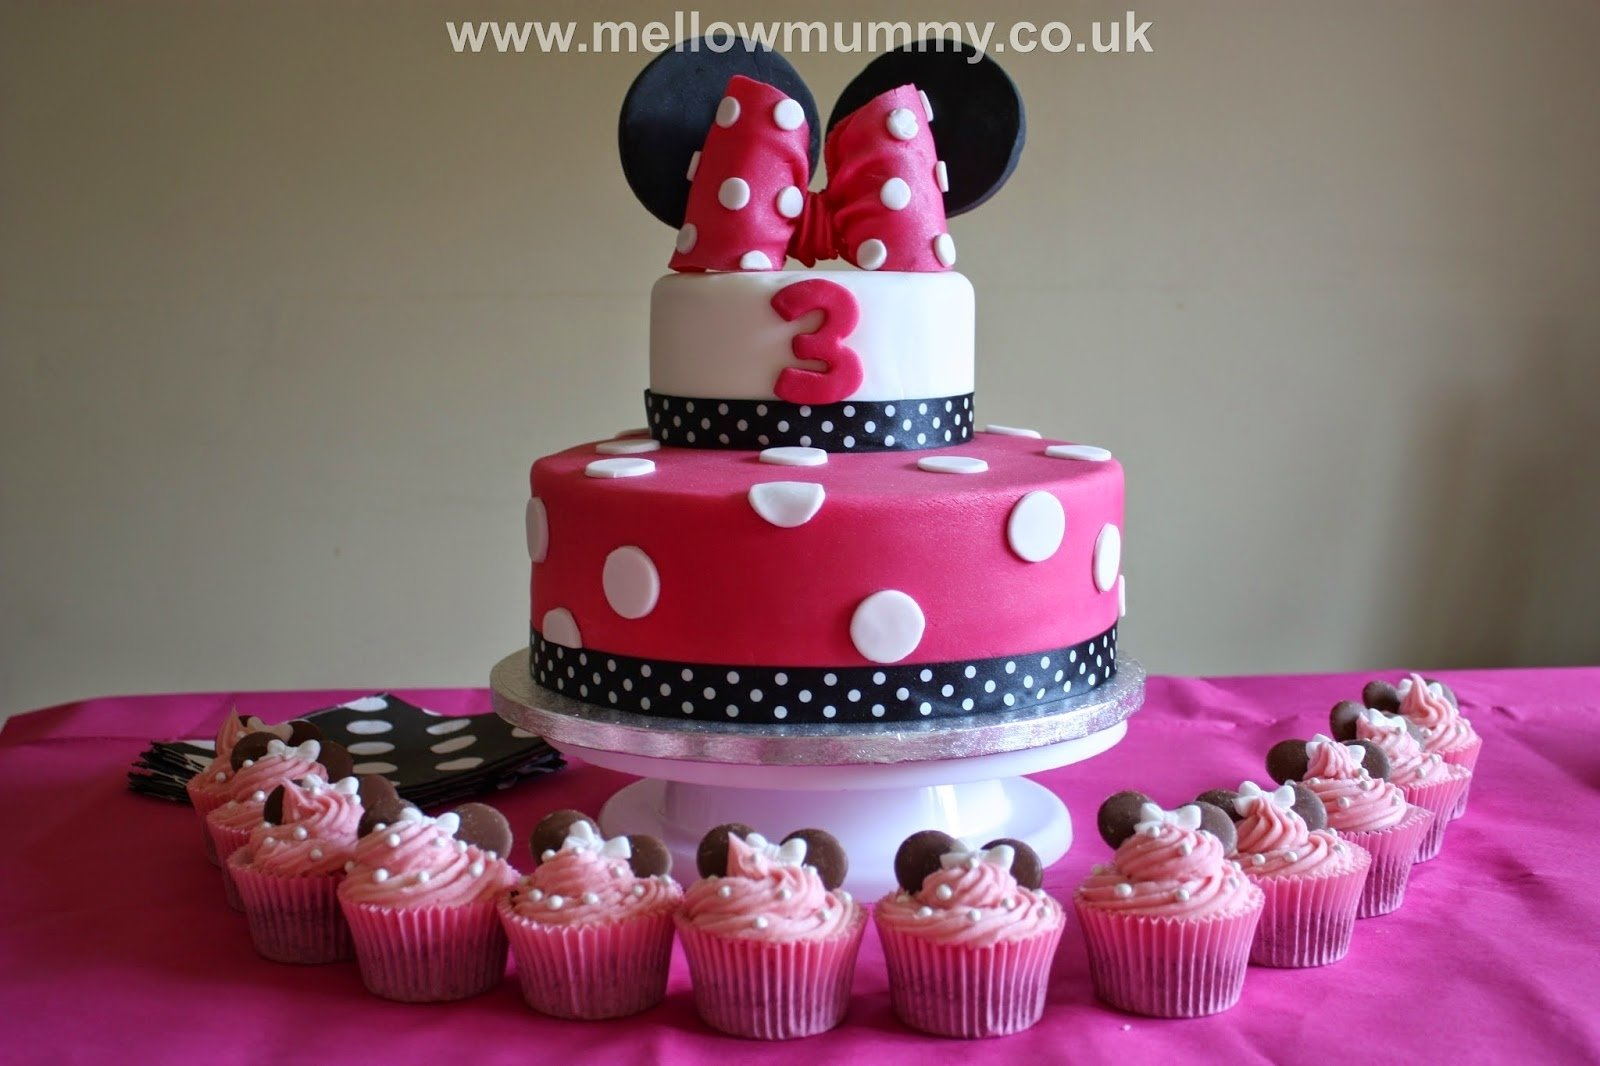 10 Ideal Minnie Mouse Party Ideas Pinterest mellow mummy the one with the spotty minnie mouse birthday cake 1